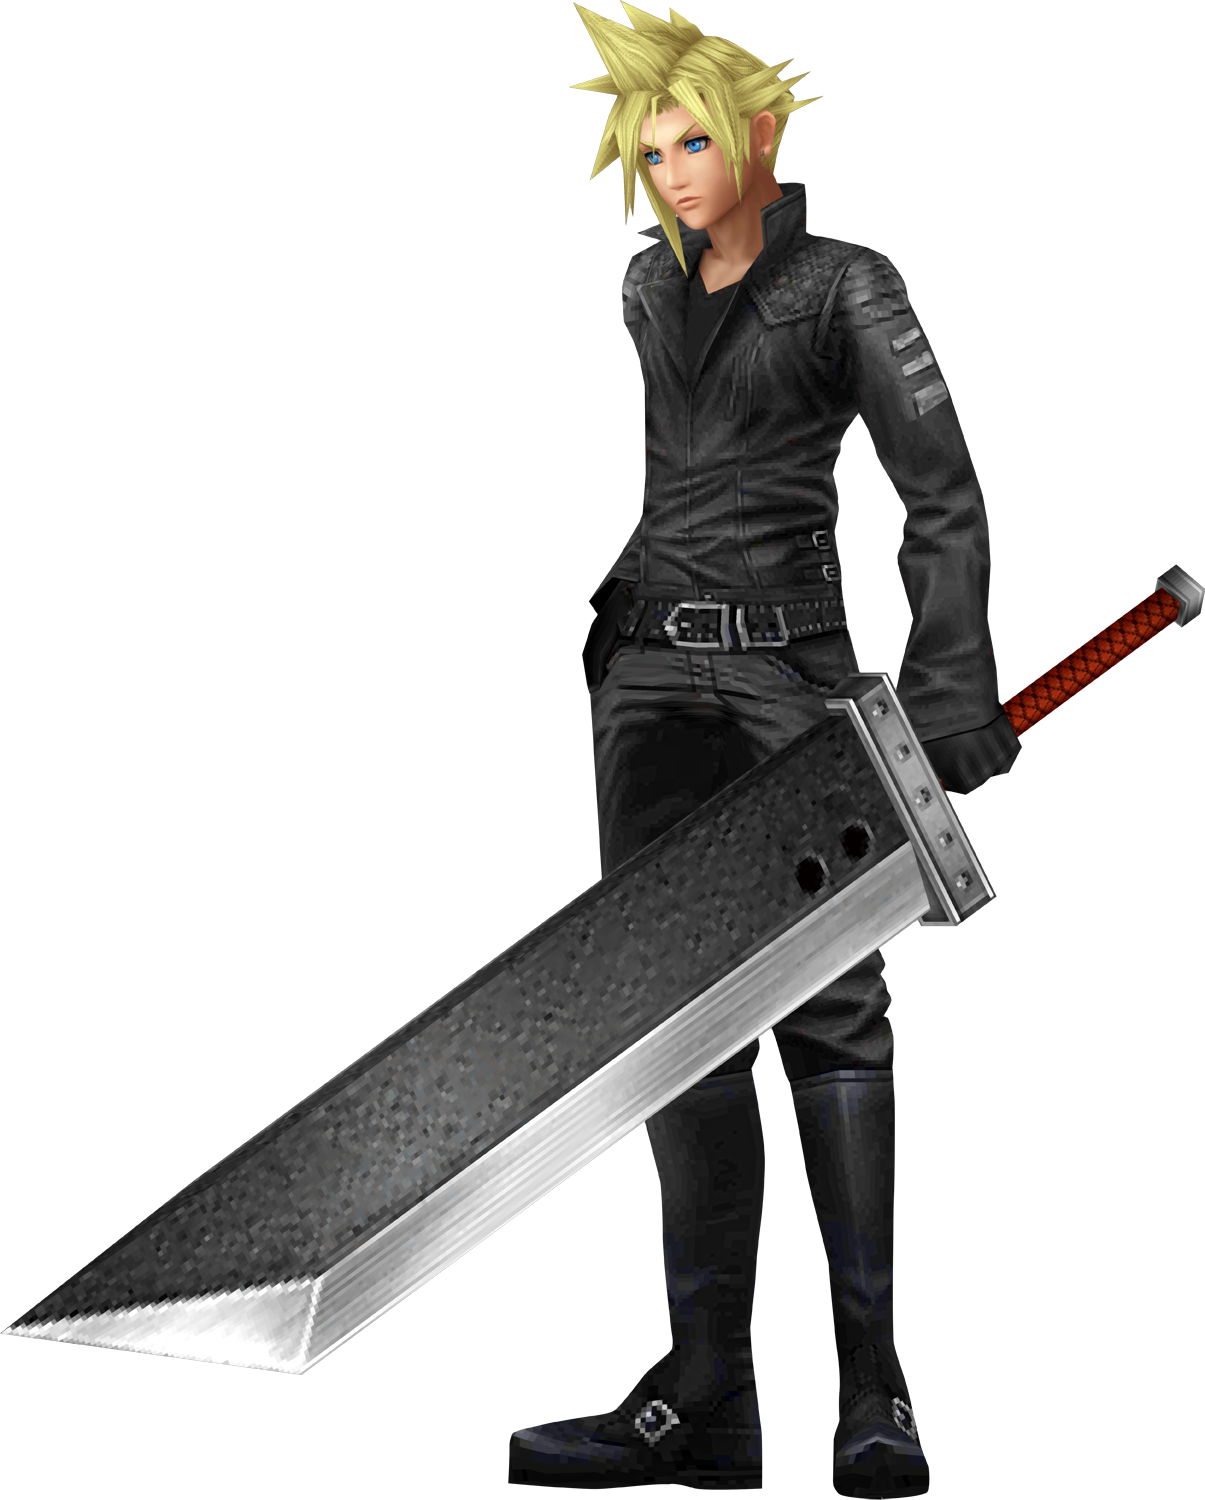 Cloud Strife Png Picture 1870009 Cloud Strife Png